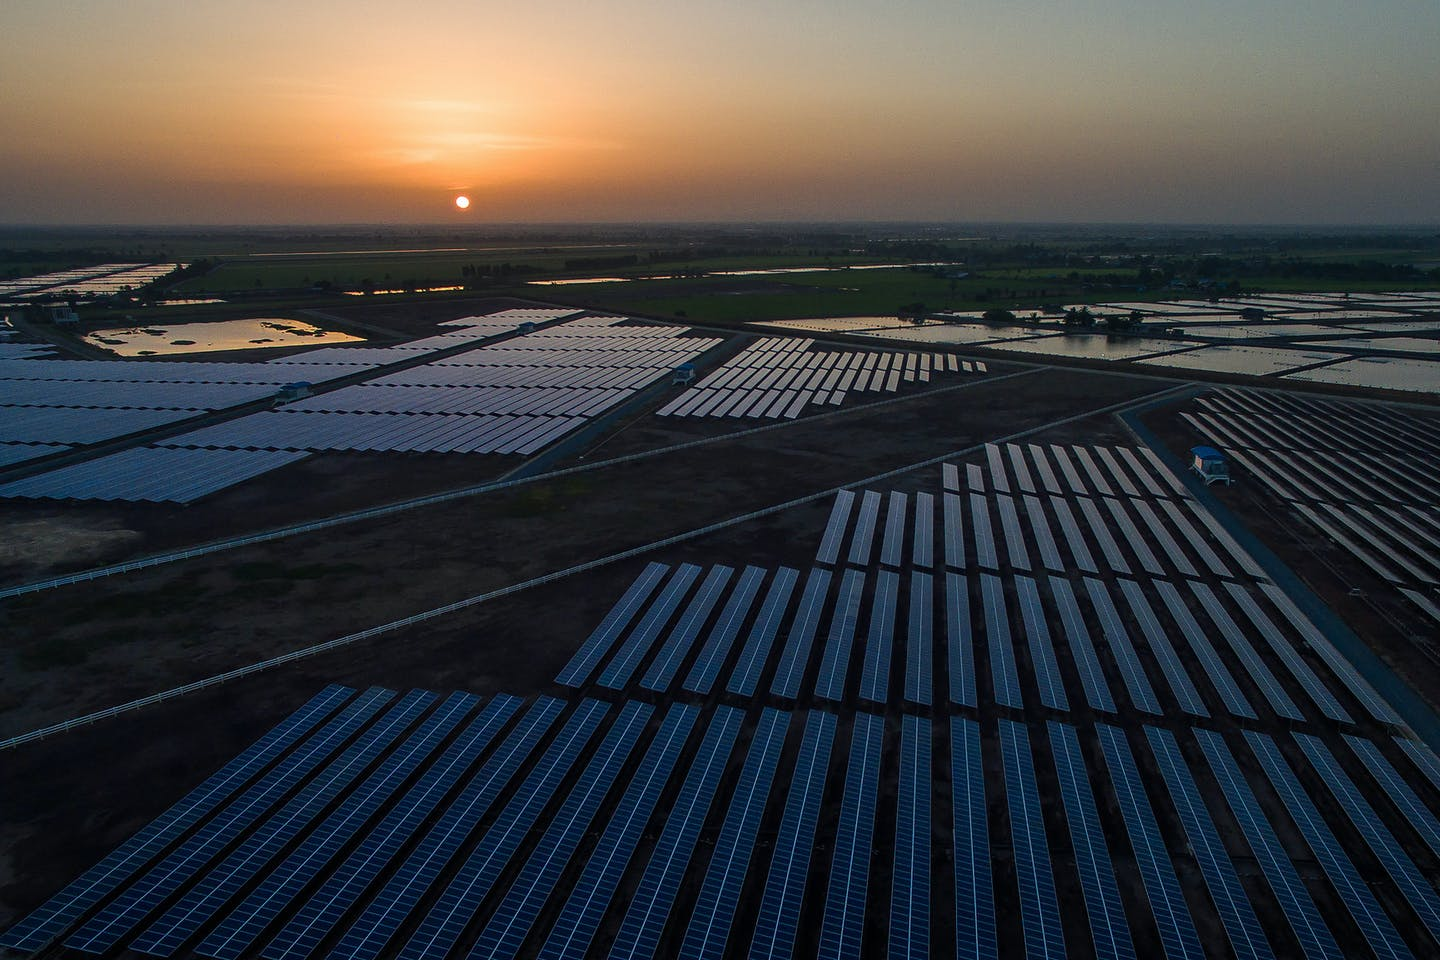 Sunrise at Central Thailand Solar Farm